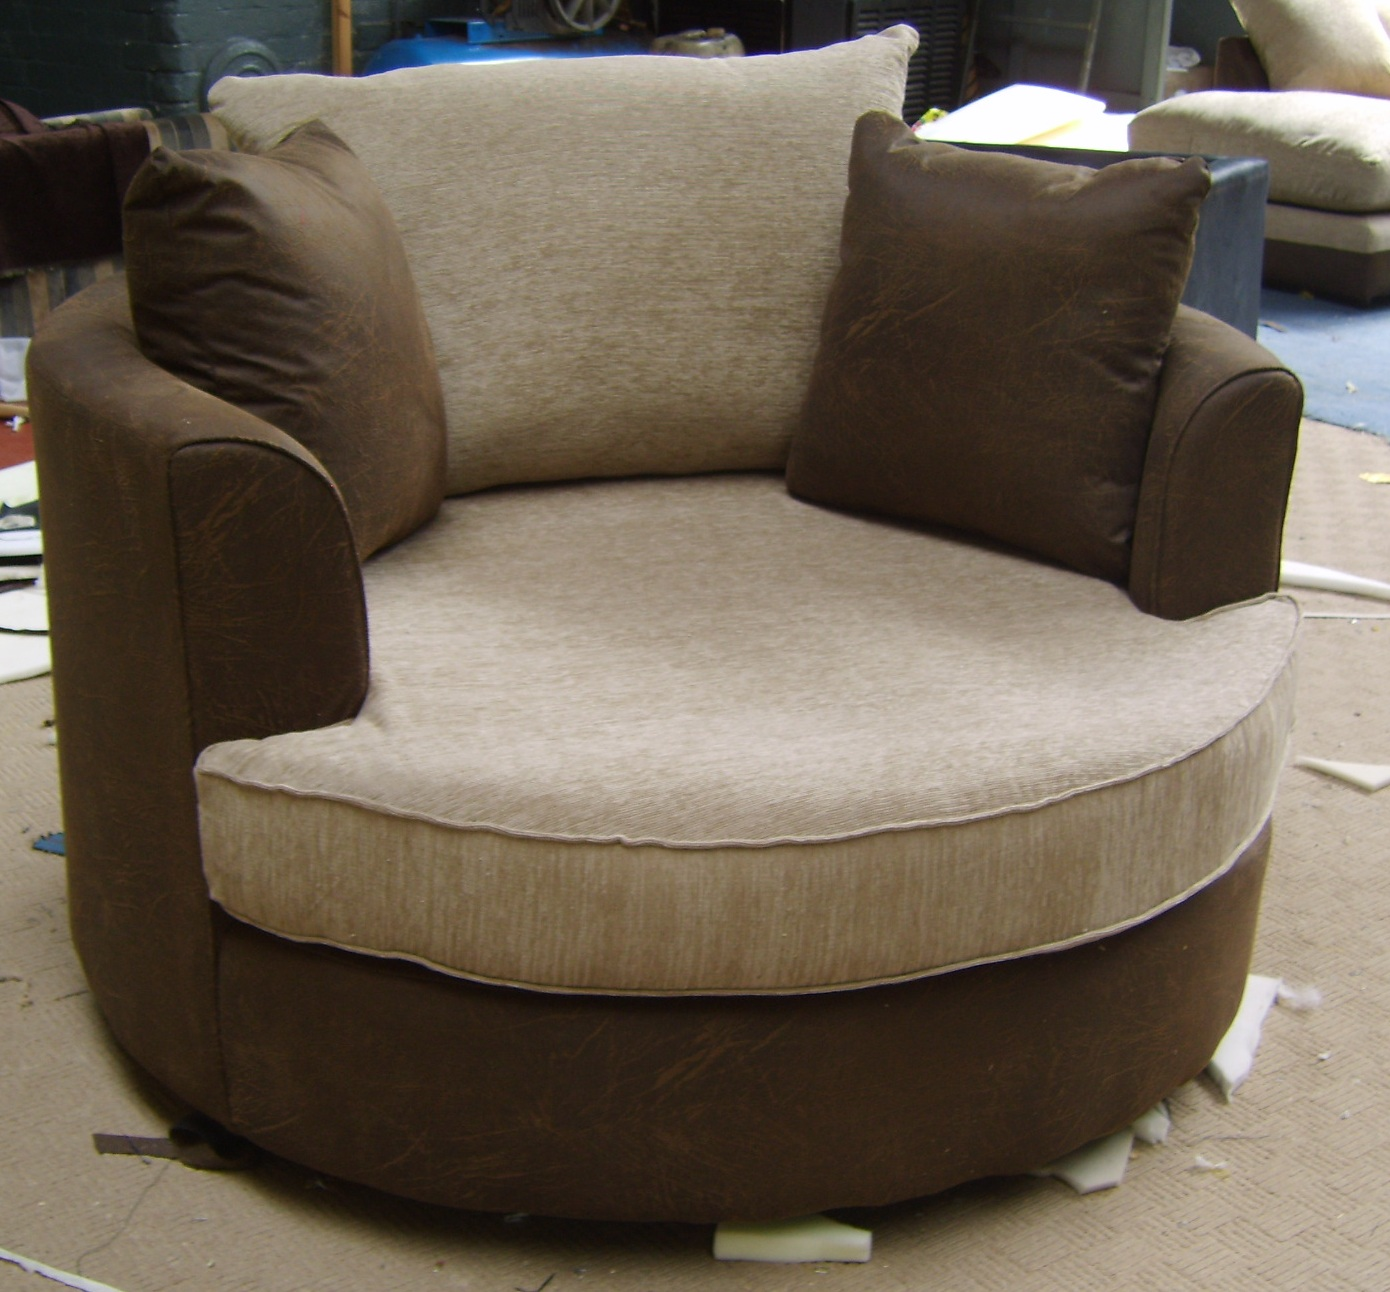 Round Comfy Chair Funky Reading Time Tori L Ridgewood